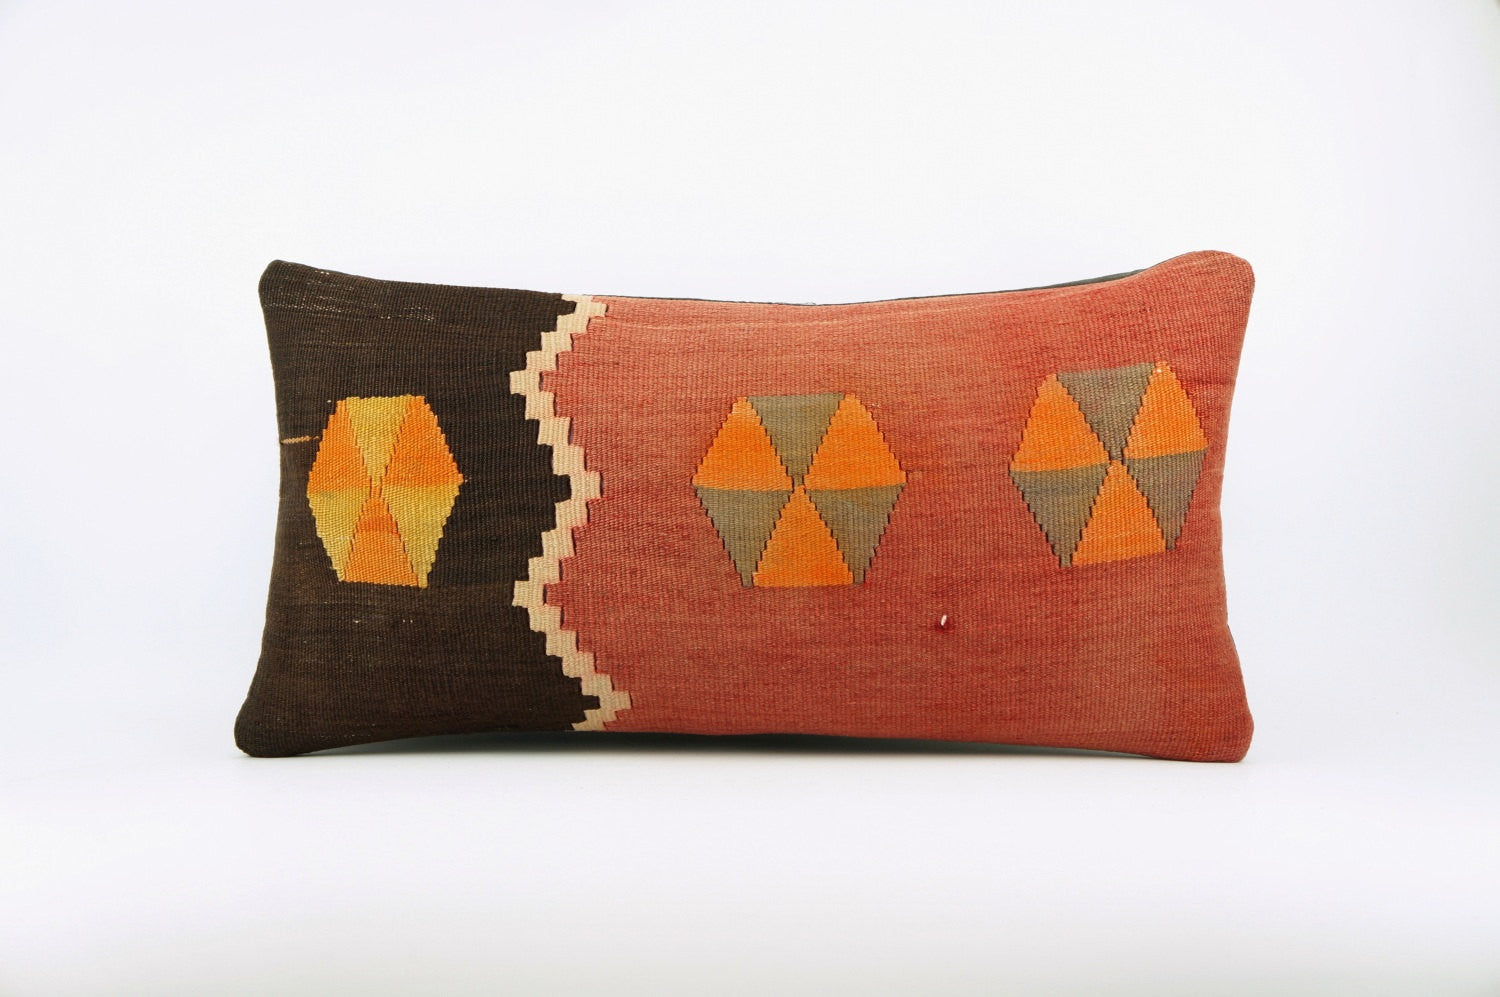 12x24 Ethnic decorative pillow cover , Bohemian pillow case, Modern home decor Geometric Multi colour handwoven pillow ,1655 - kilimpillowstore  - 1